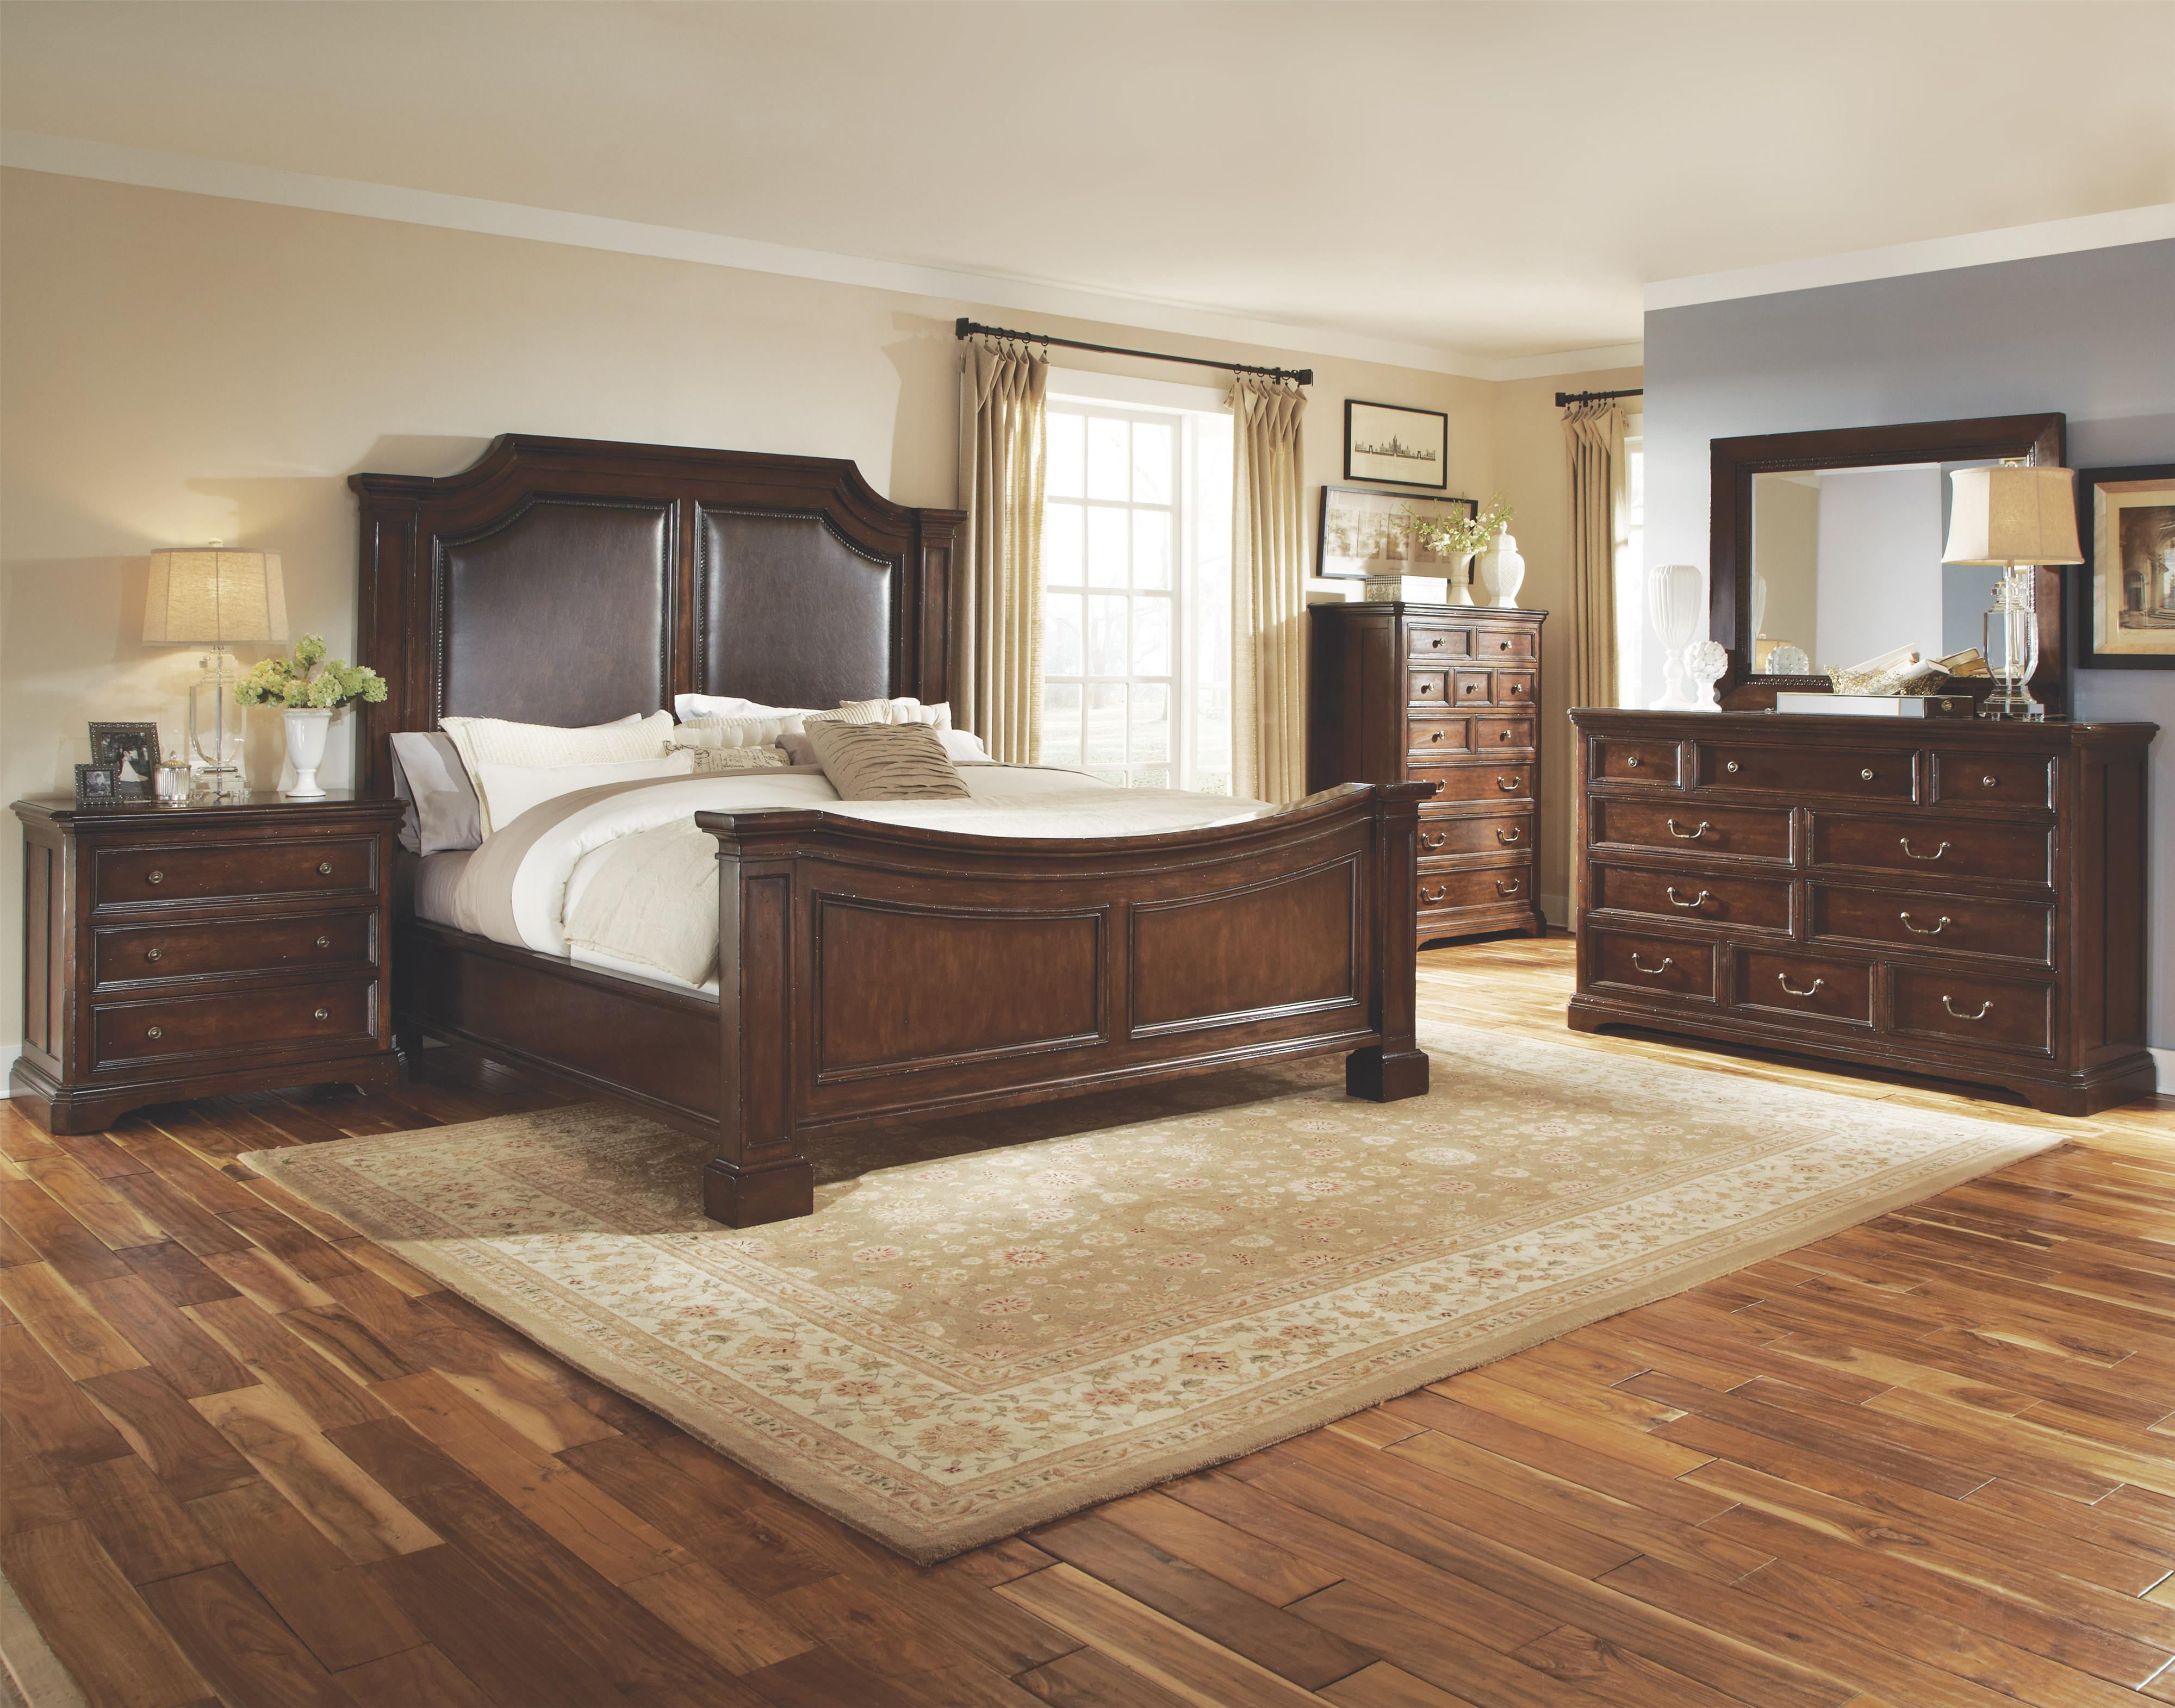 Belfort Signature Edwards Ferry King Bedroom Group - Item Number: 210 K Bedroom Group 2